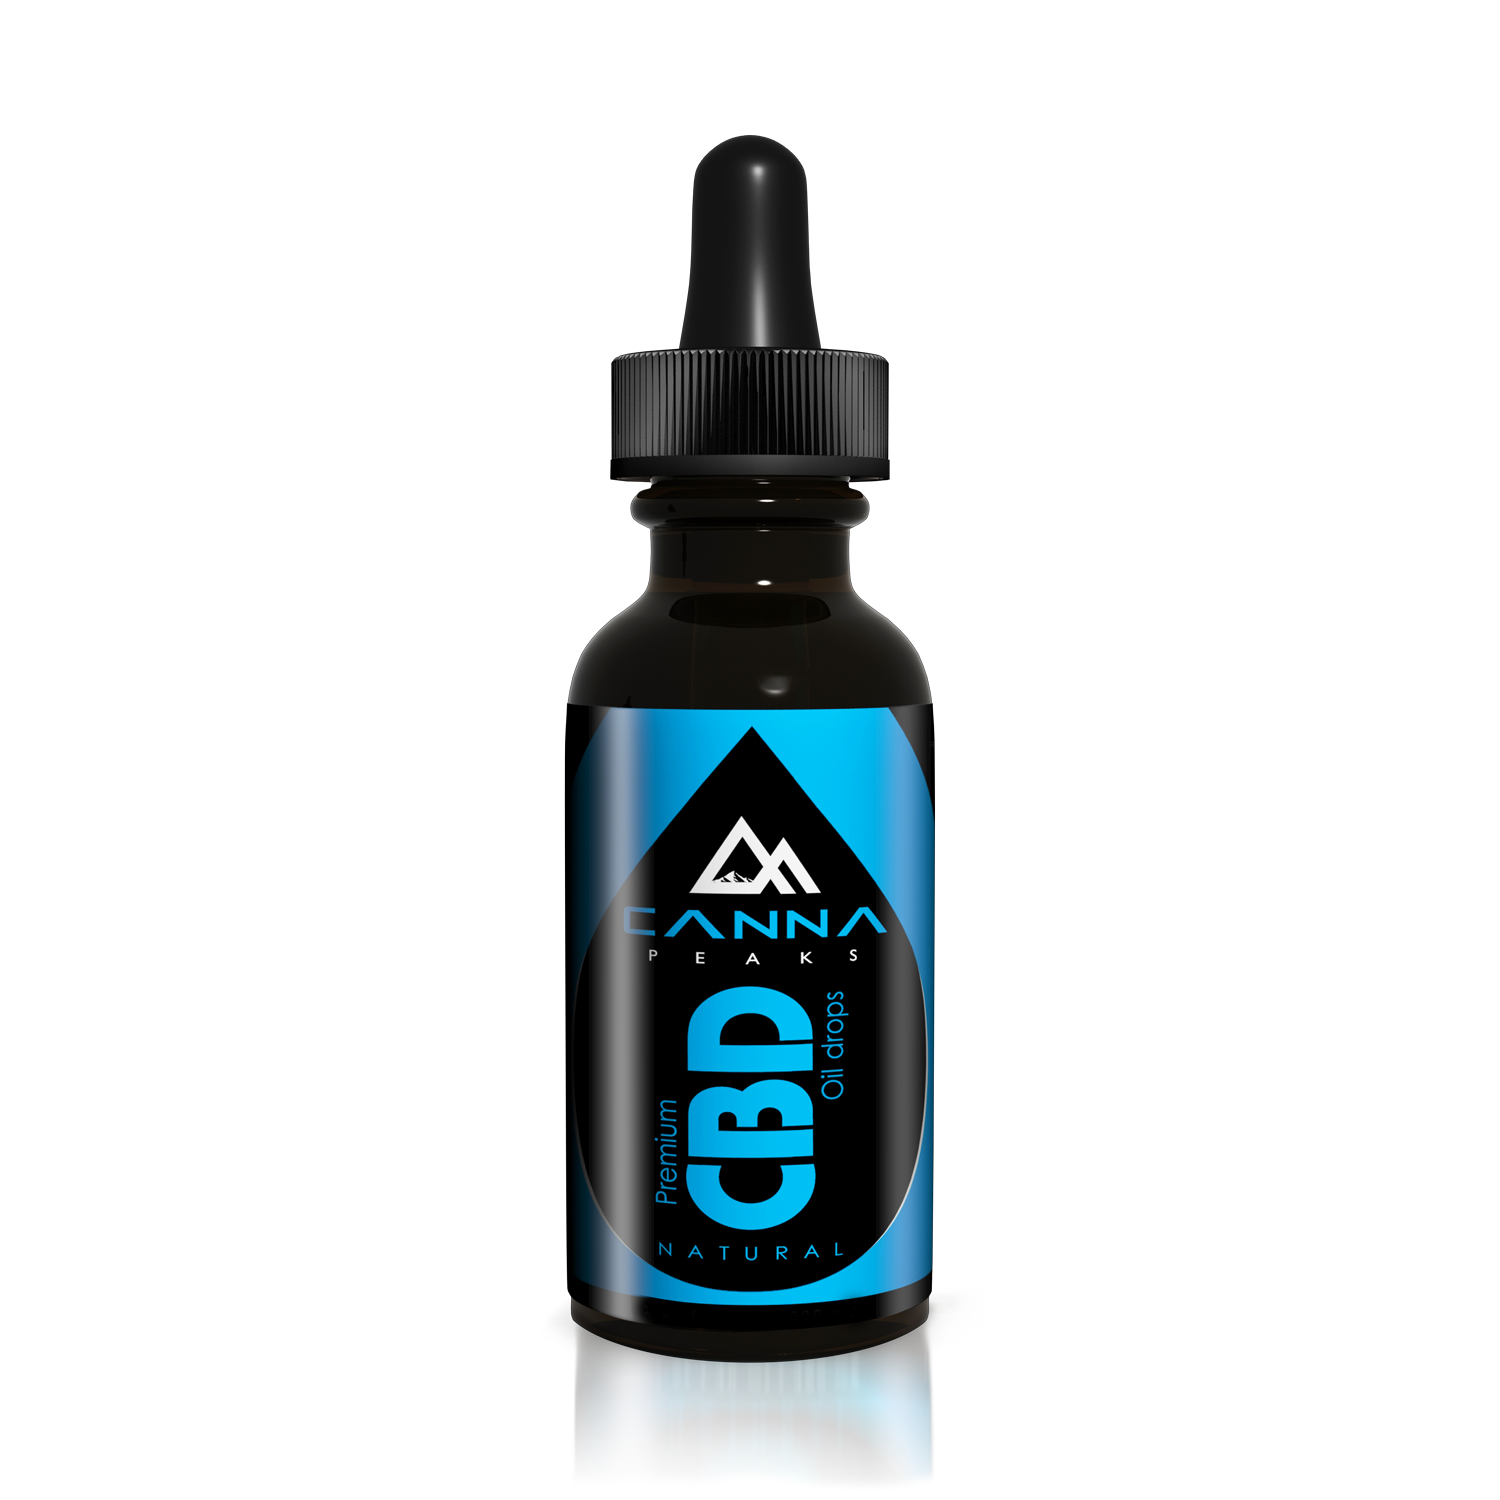 Canna Peaks All Natural, Organic, Pure Blue Label CBD Oil - 300 mg Bottle with Dropper